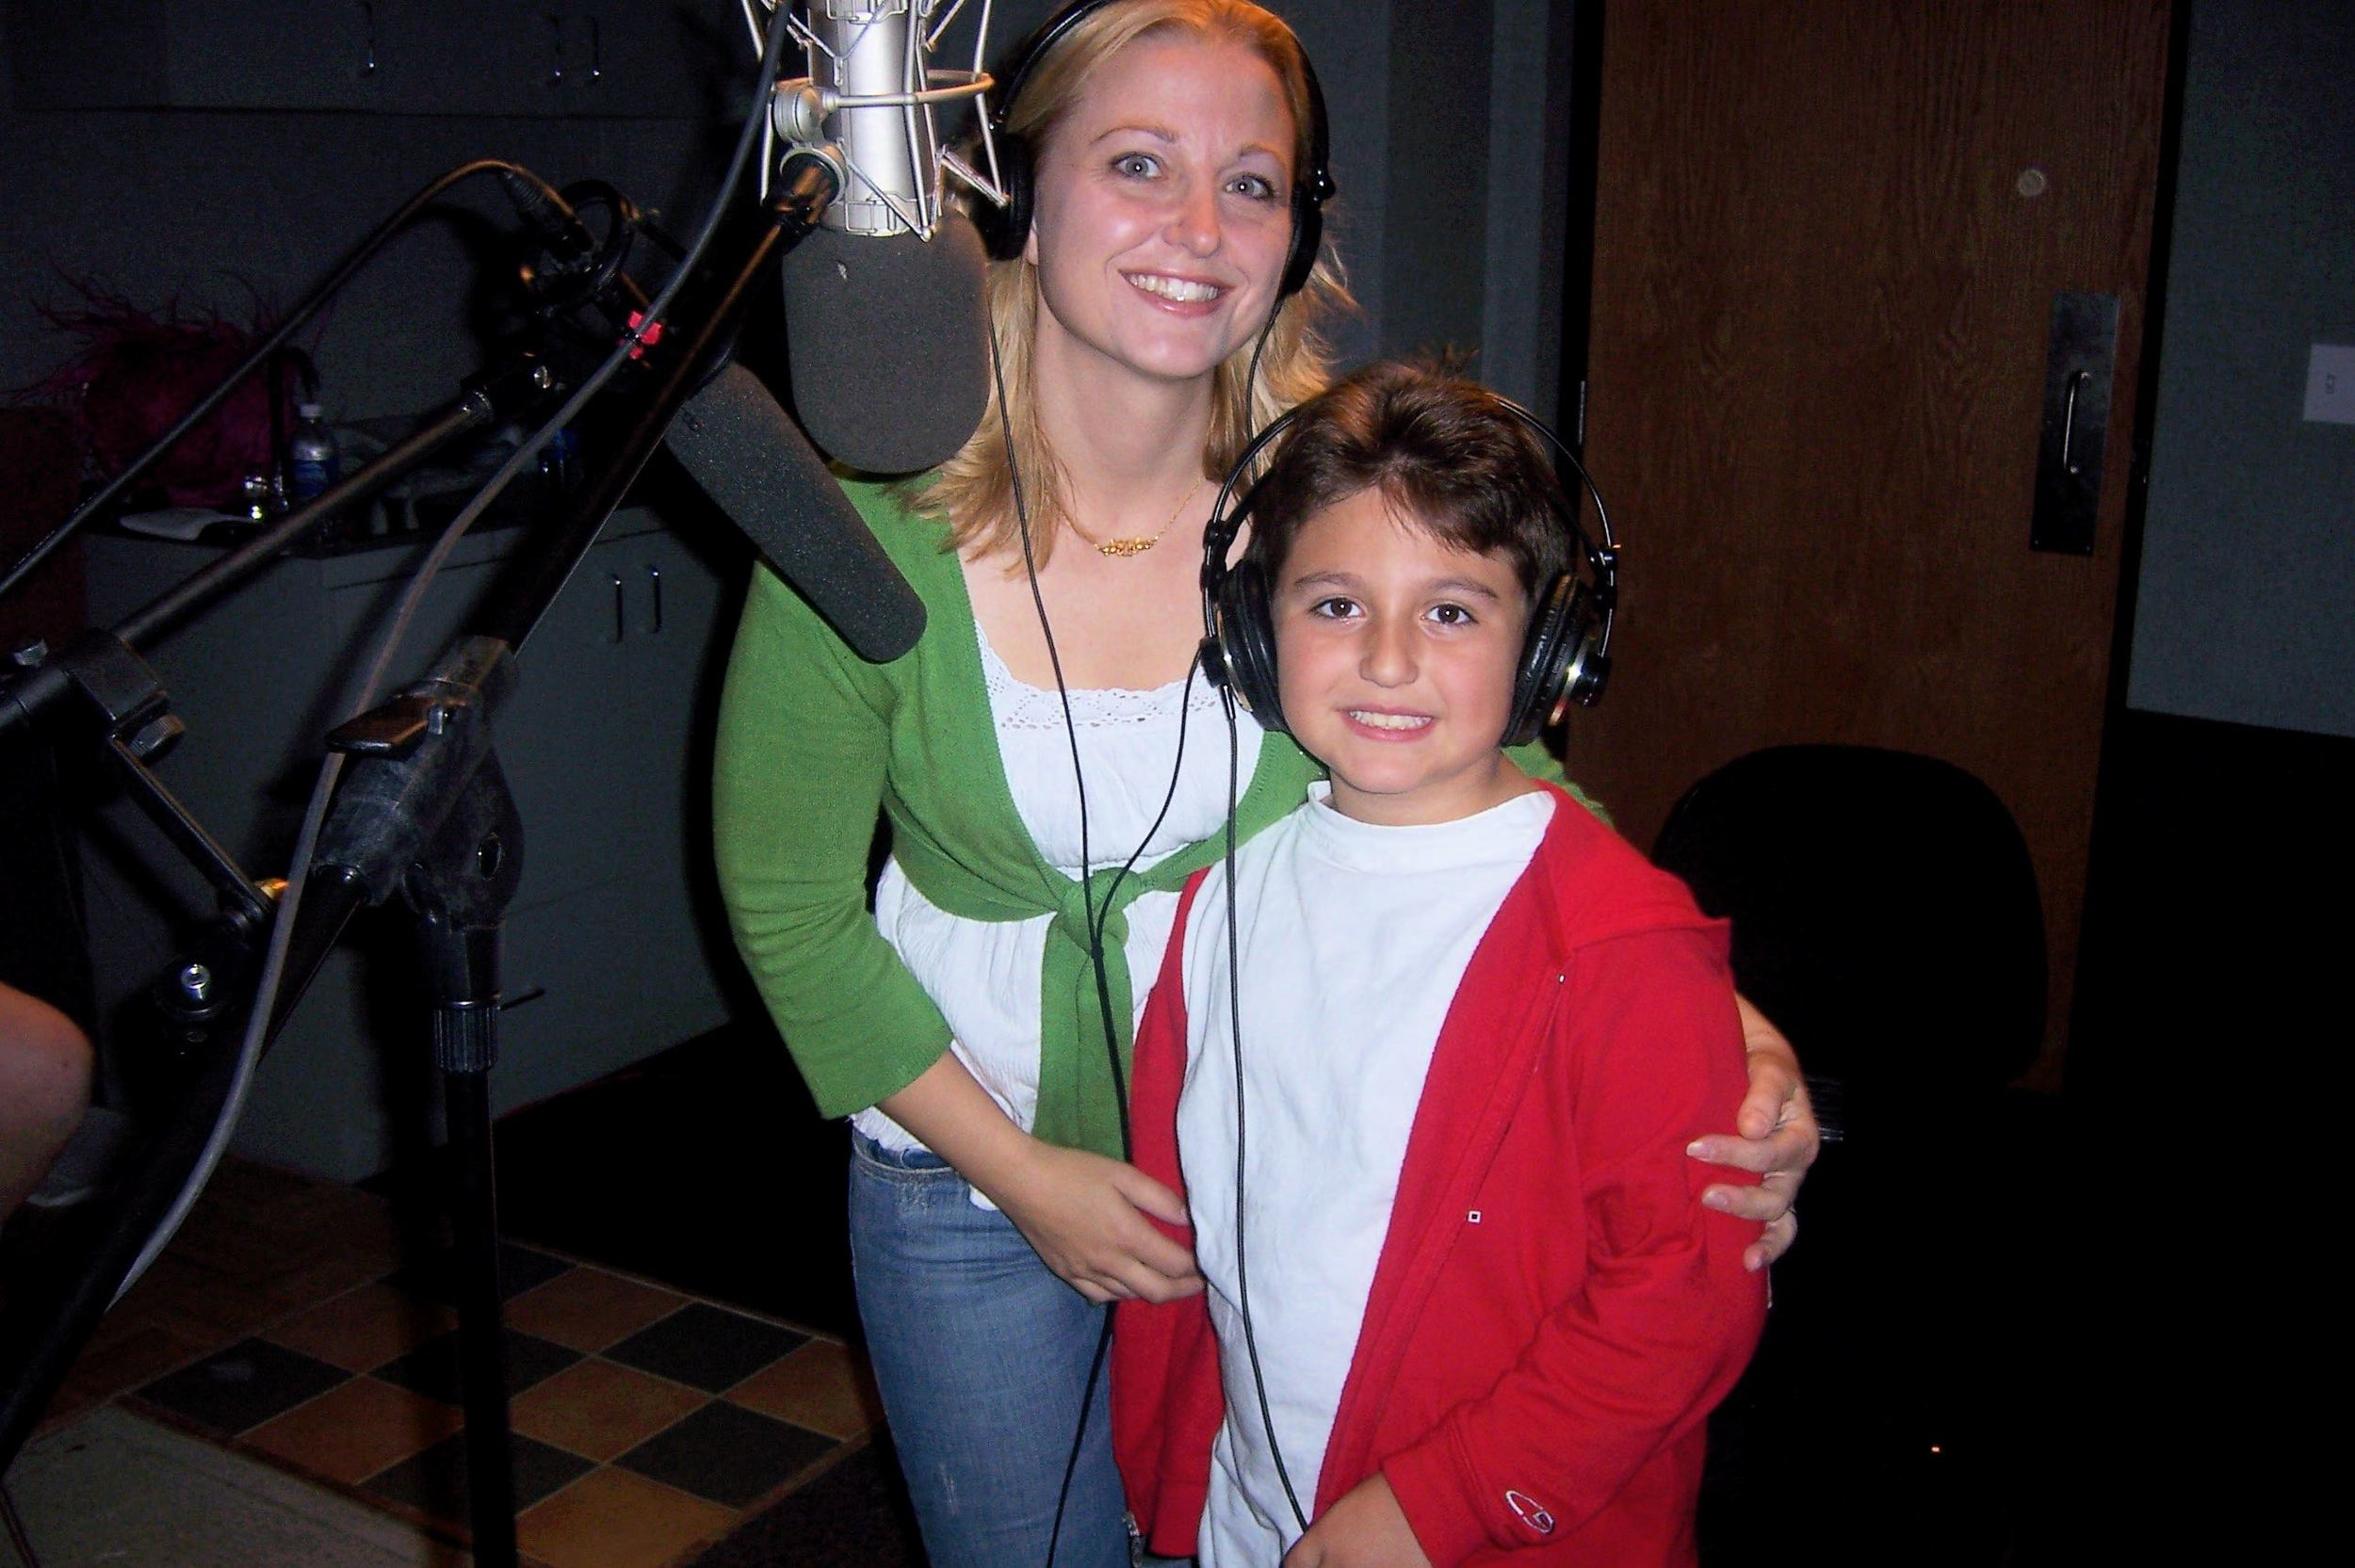 Pamela Zappia (Violet) and Paul Zappia (Mitchell/Orphan 'Price')